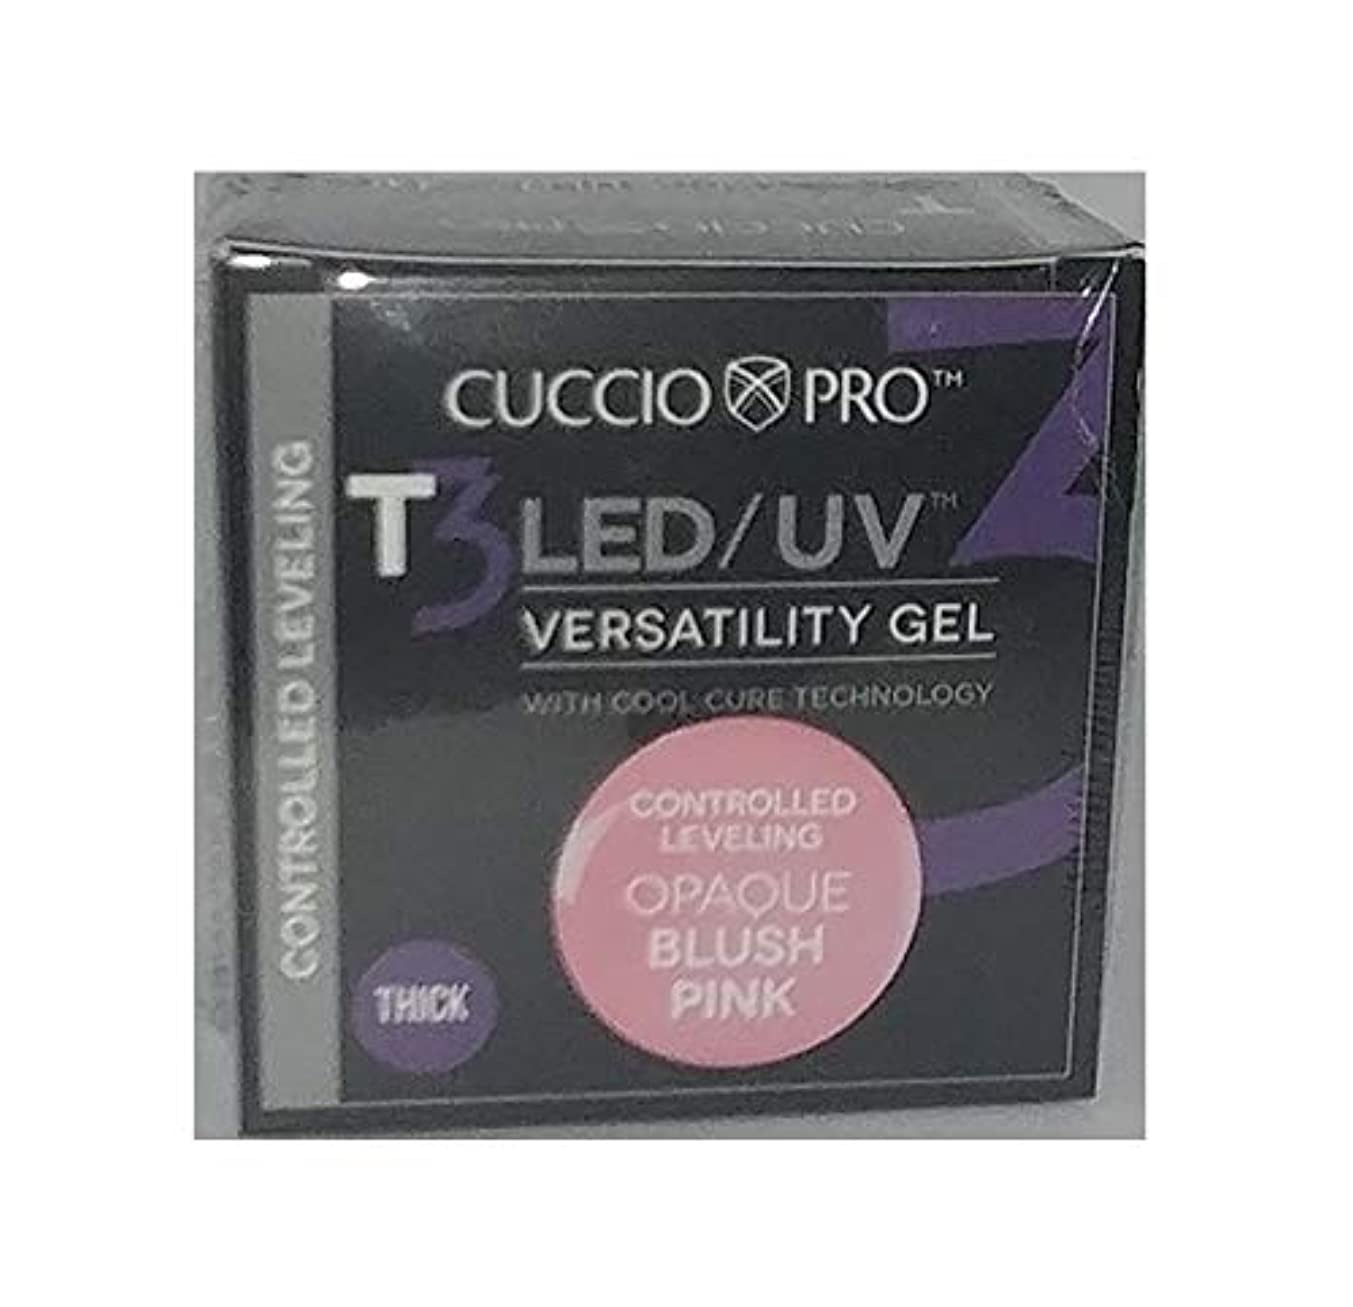 不健全相対サイズ醜いCuccio Pro - T3 LED/UV Gel - Controlled Leveling - Opaque Blush Pink - 1 oz / 28 g